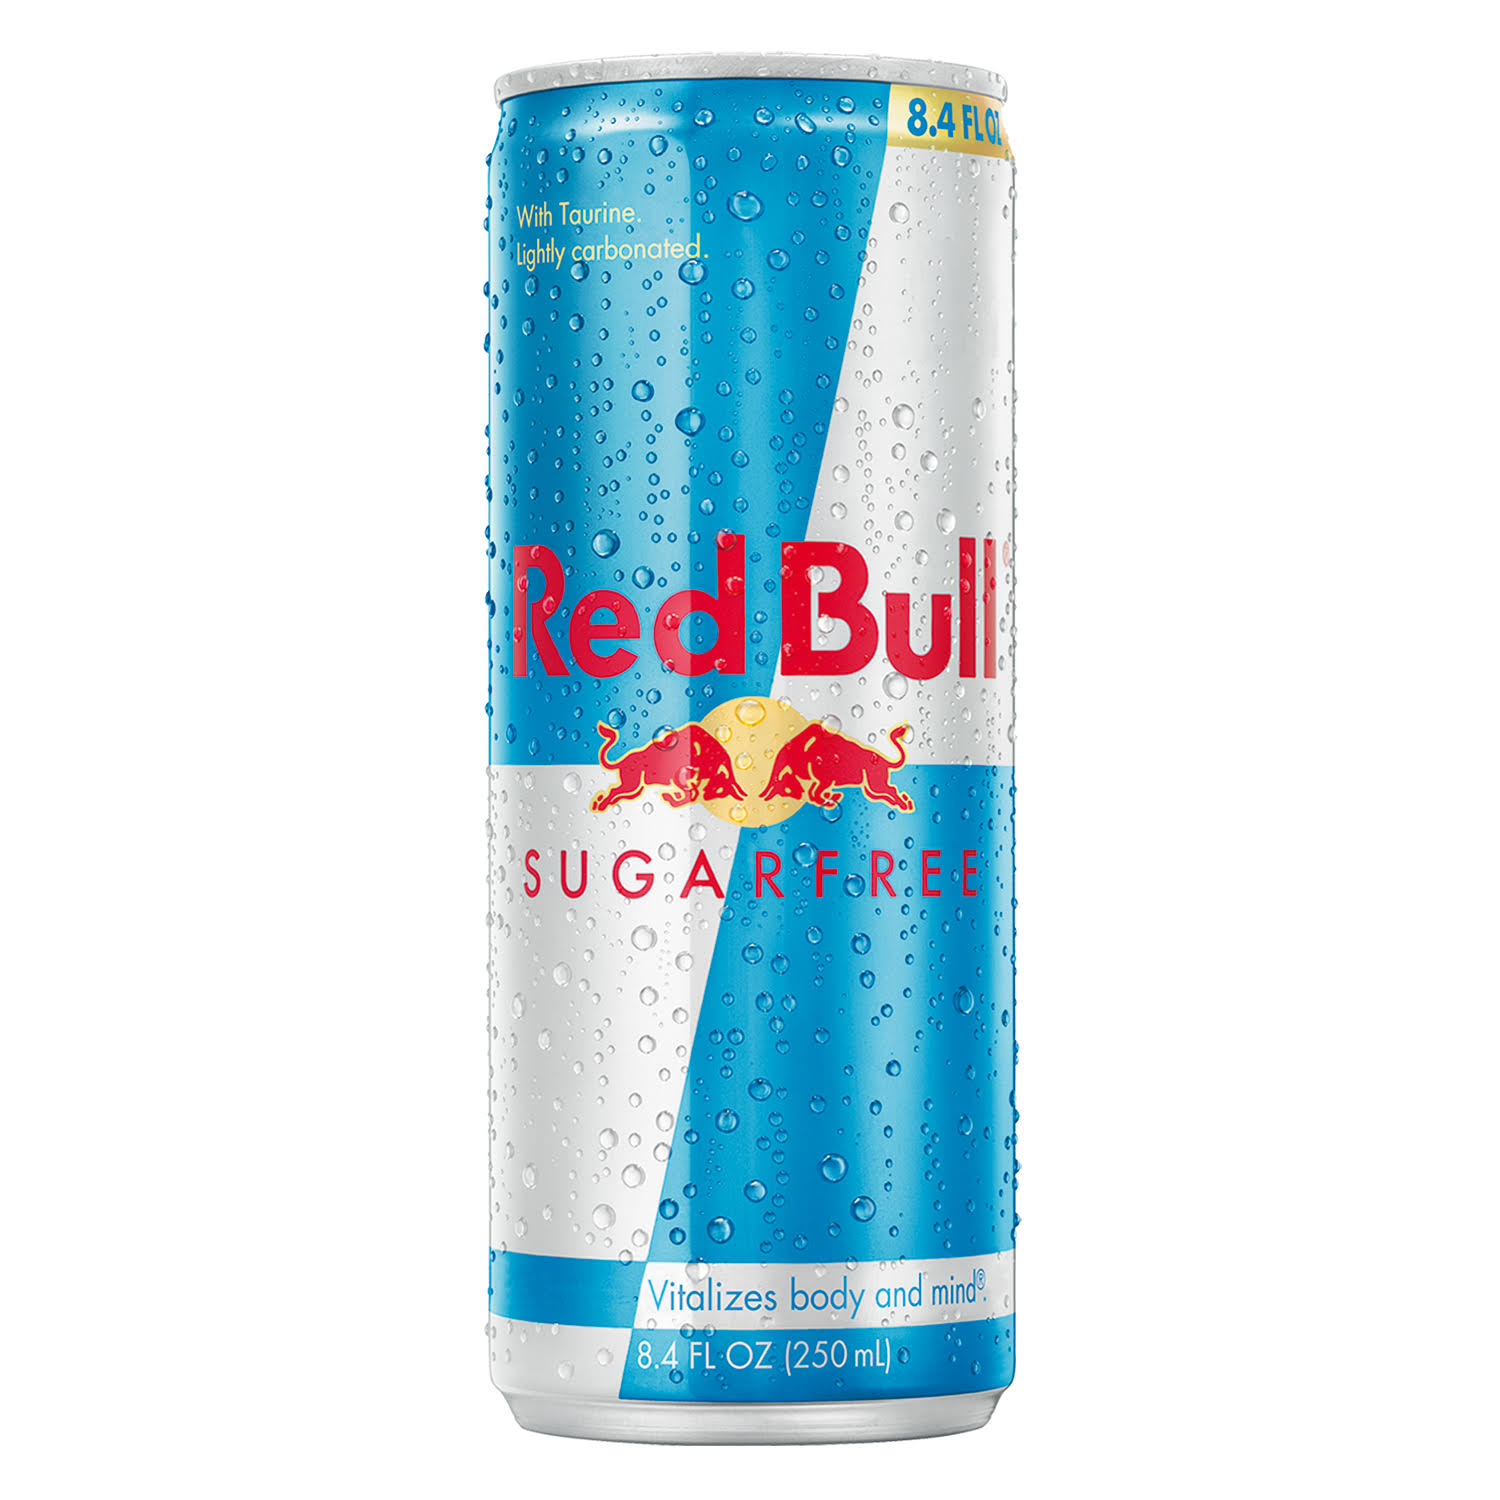 Red Bull Energy Drink - Sugarfree - 8.4 fl. oz